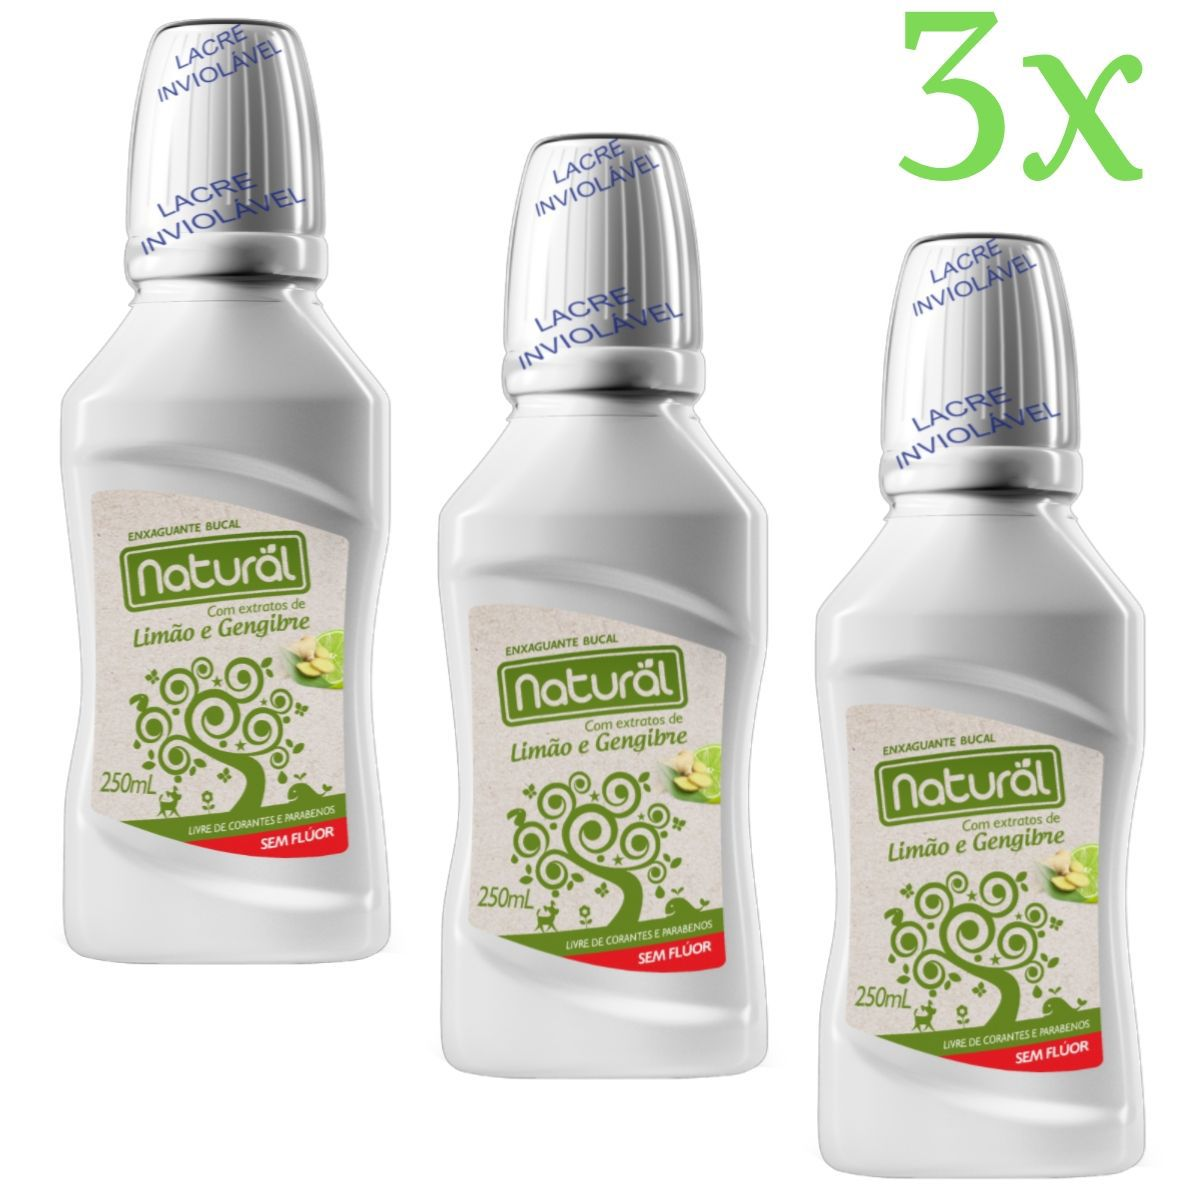 Kit 3 Enxaguante Bucal Suavetex Natural C/ Extratos de Limão e Gengibre - 250ml